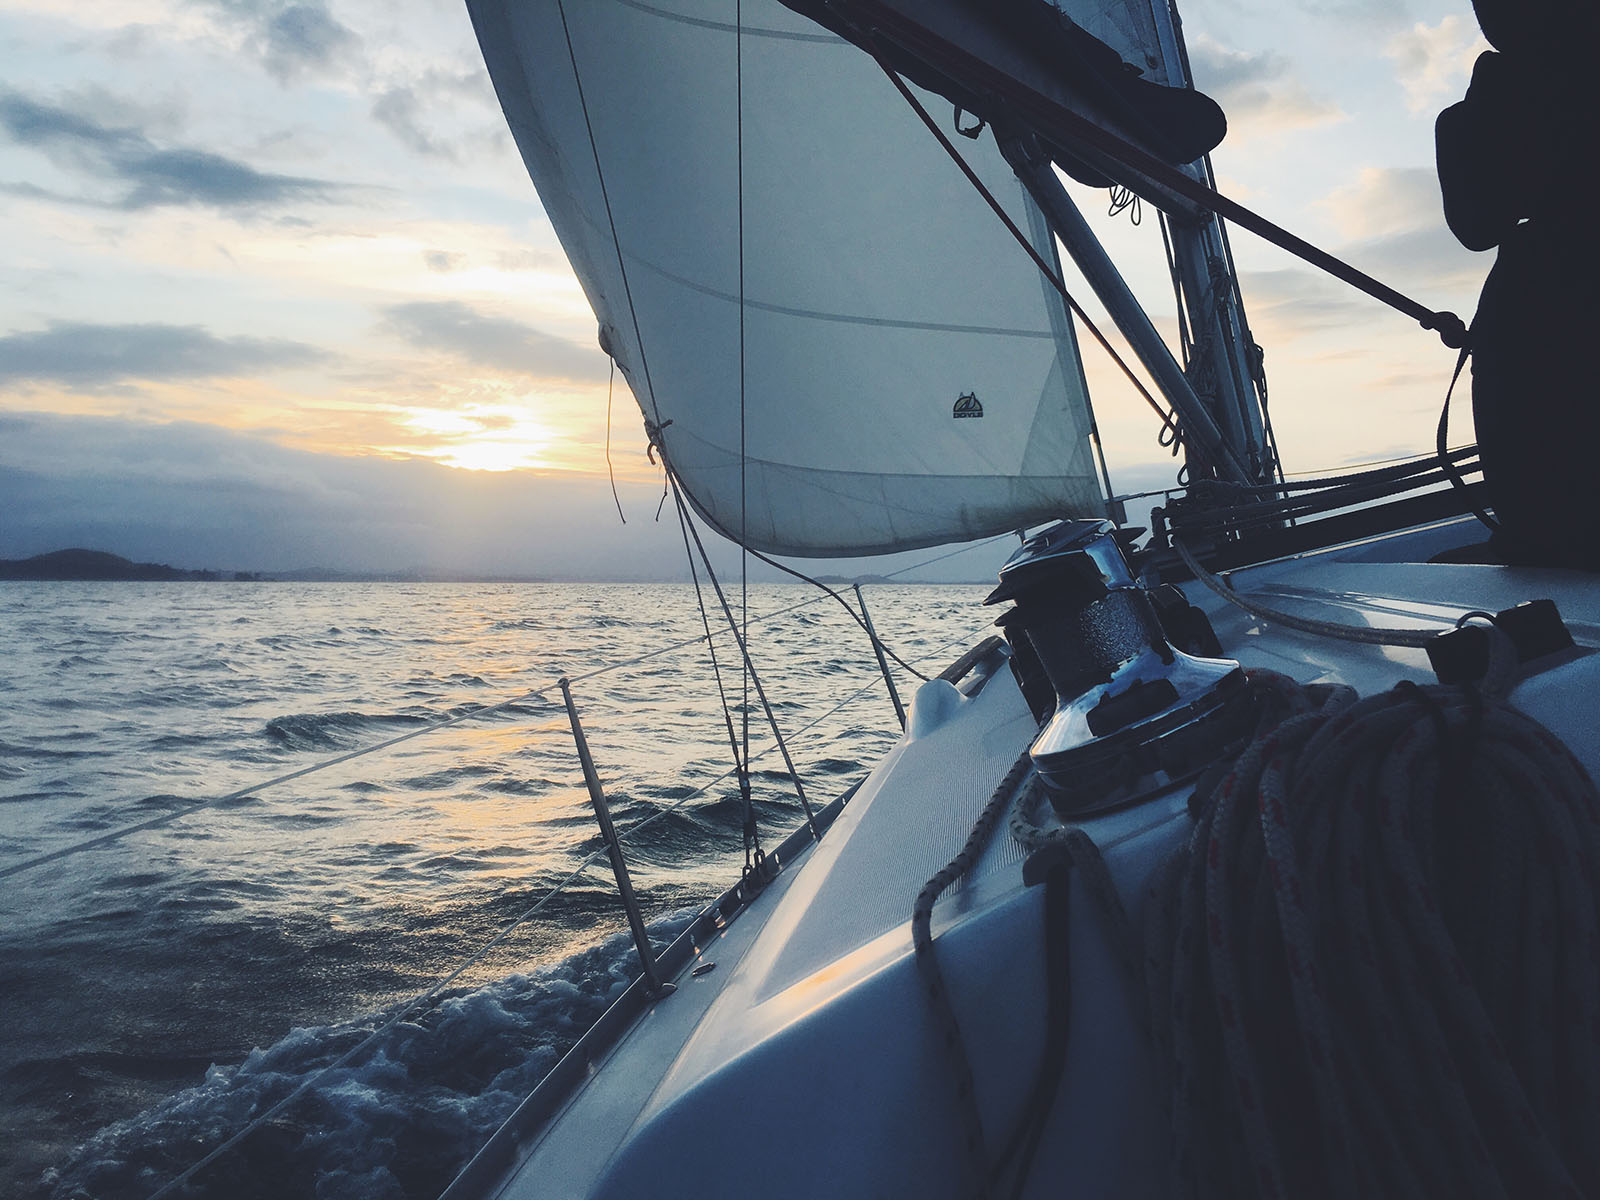 Sailing close hauled with sailtrain online RYA courses